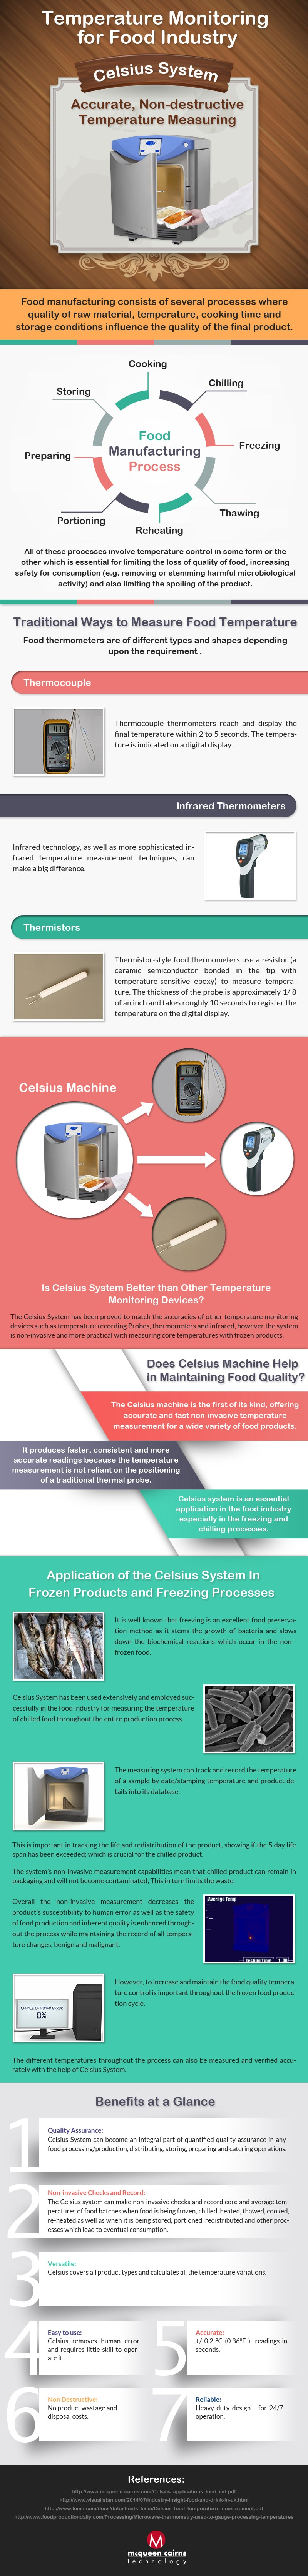 Temperature Monitoring For Food Industry Infographic